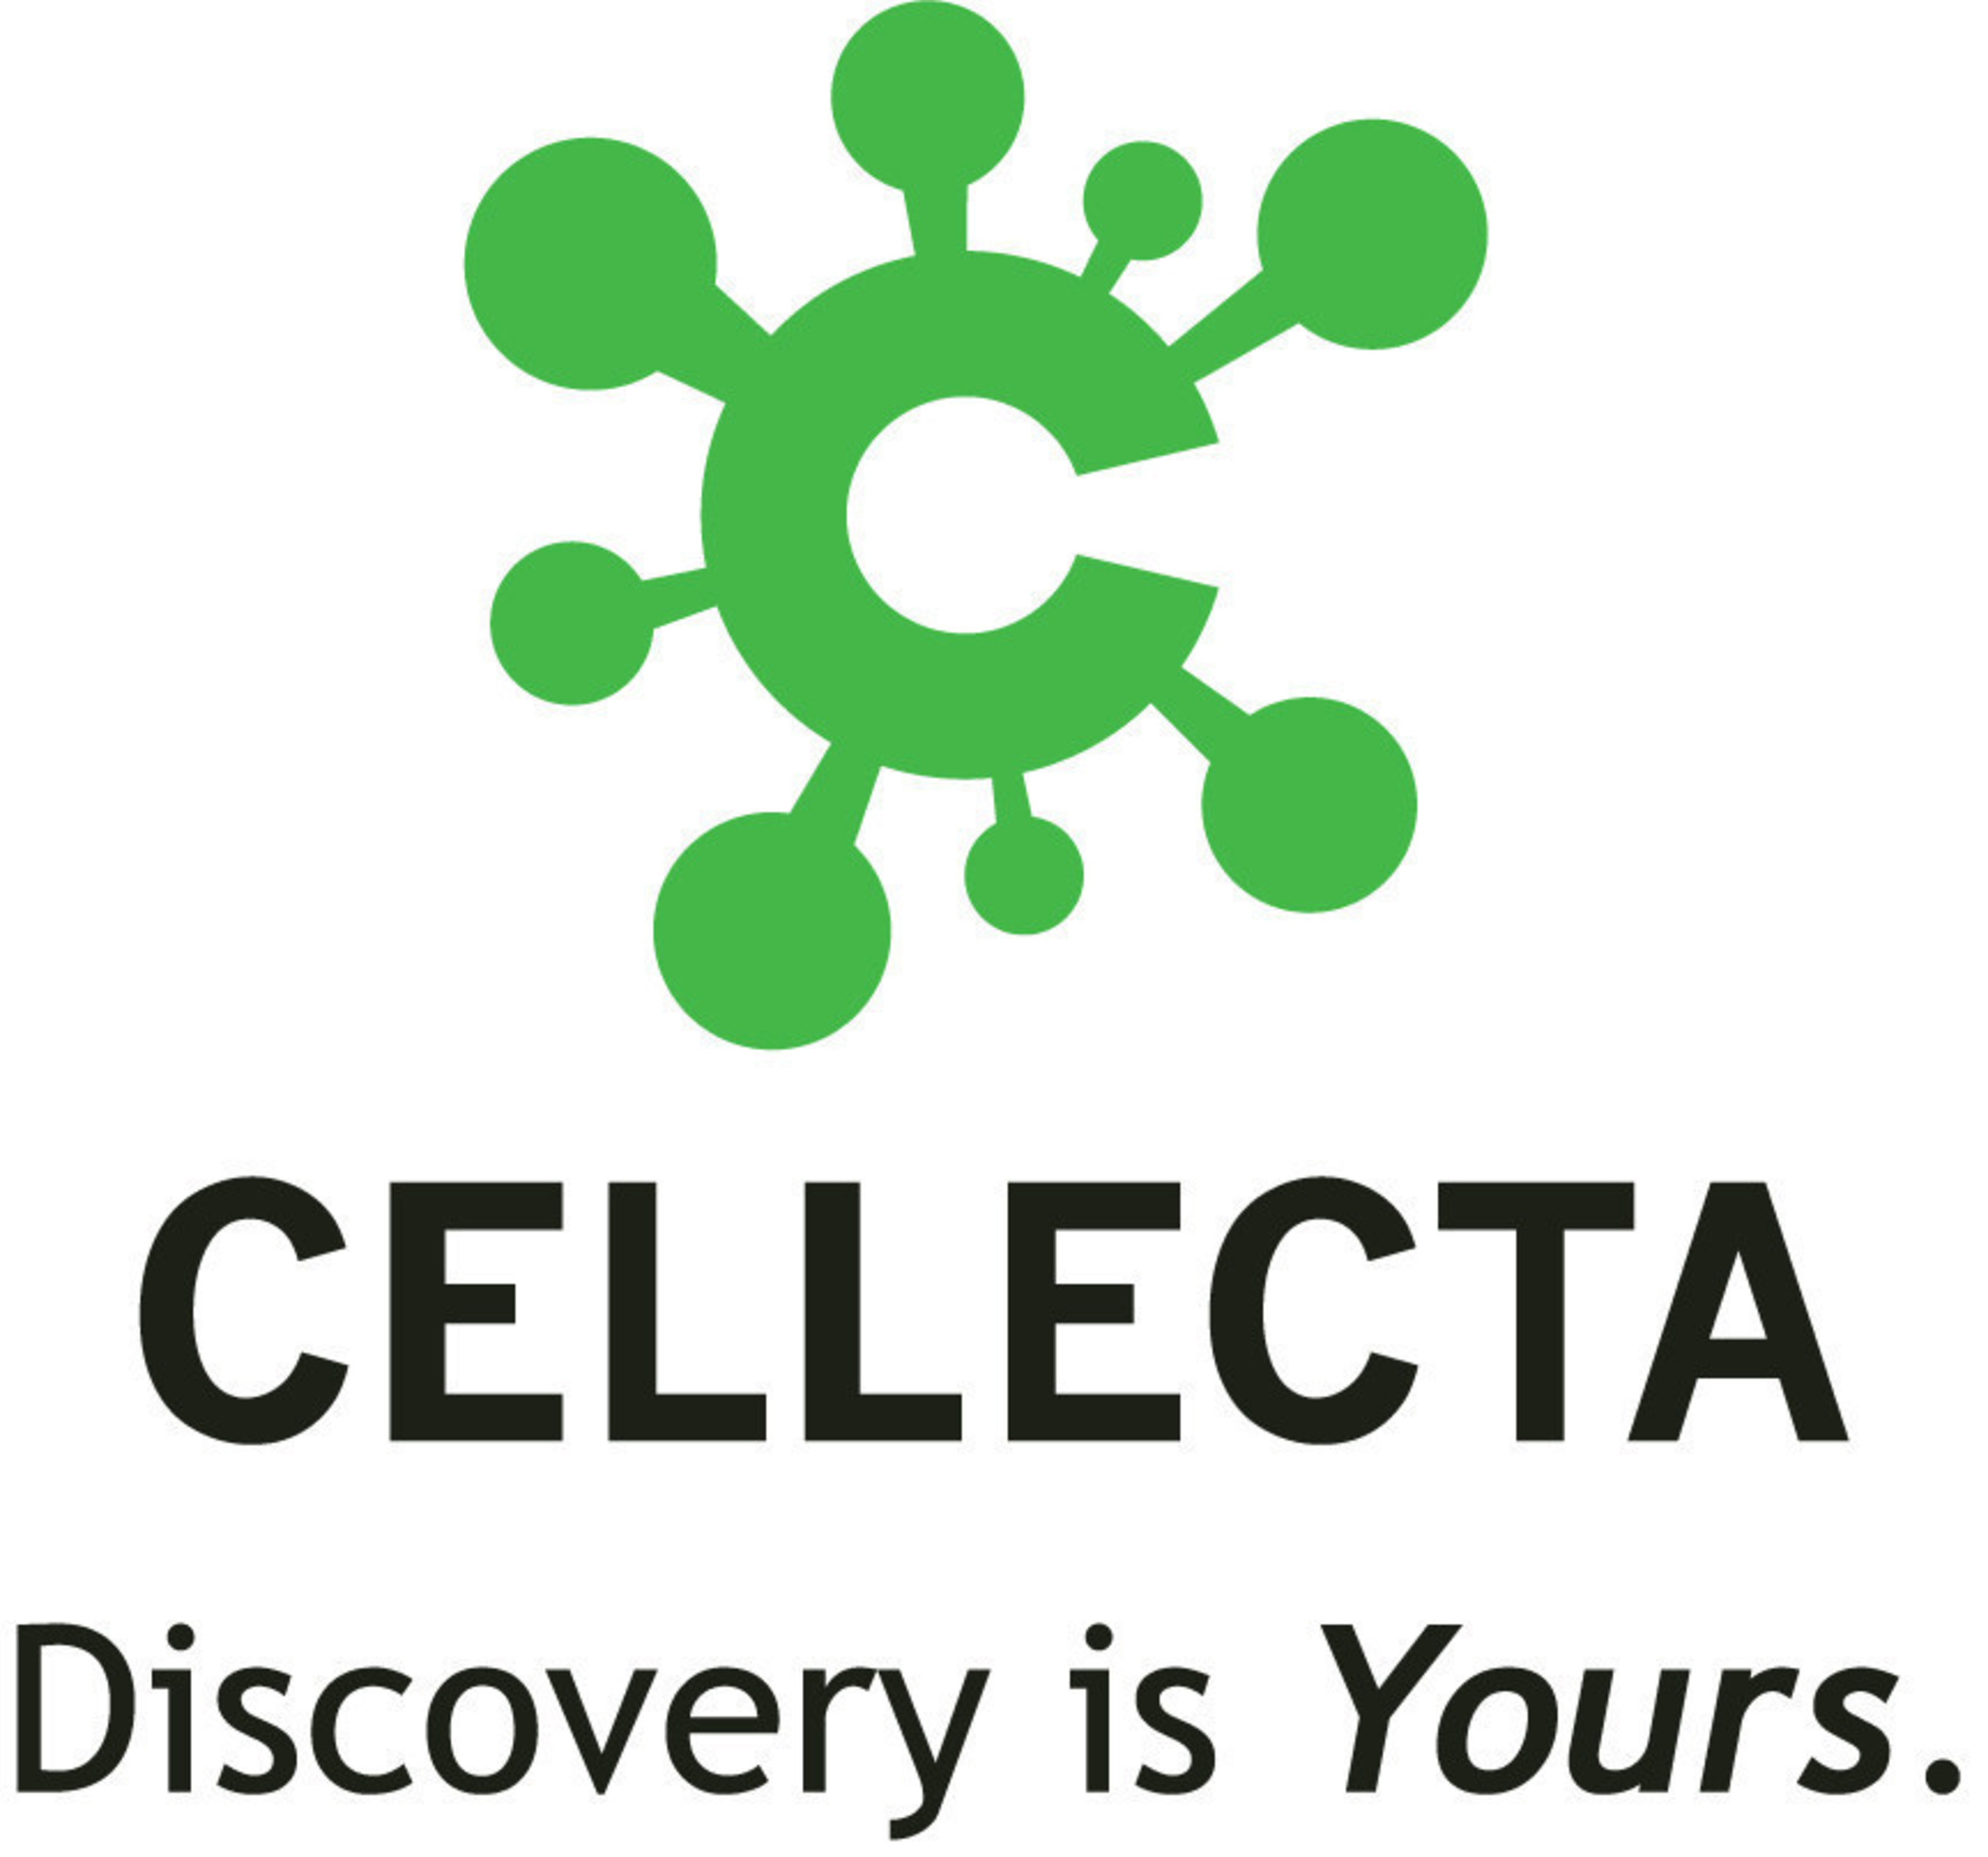 Cellecta, Inc. Discovery is Yours.